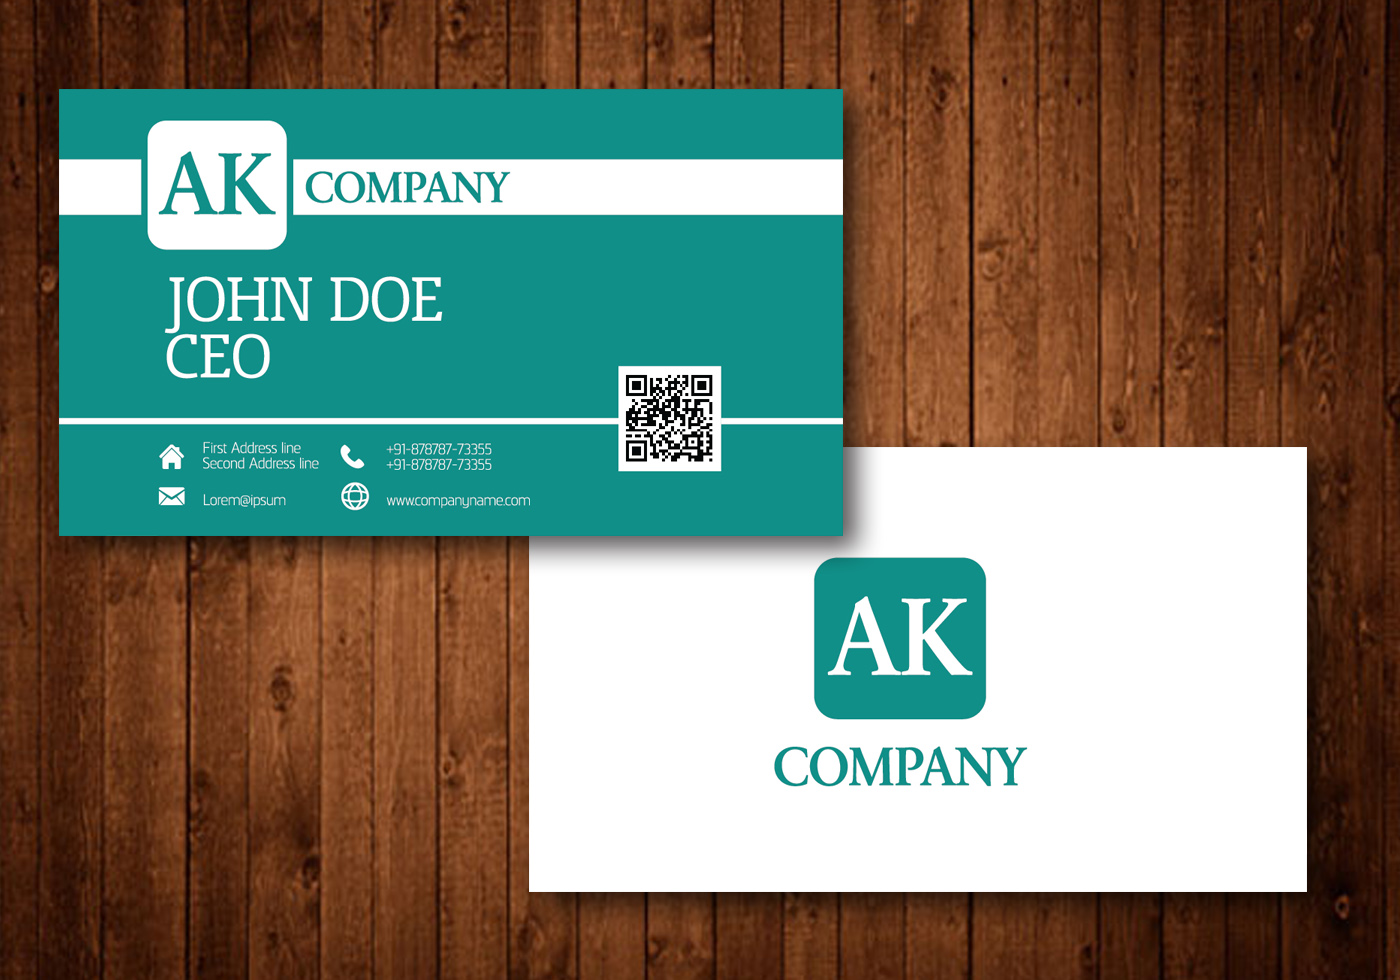 Business Card Free Vector Art - (25290 Free Downloads)